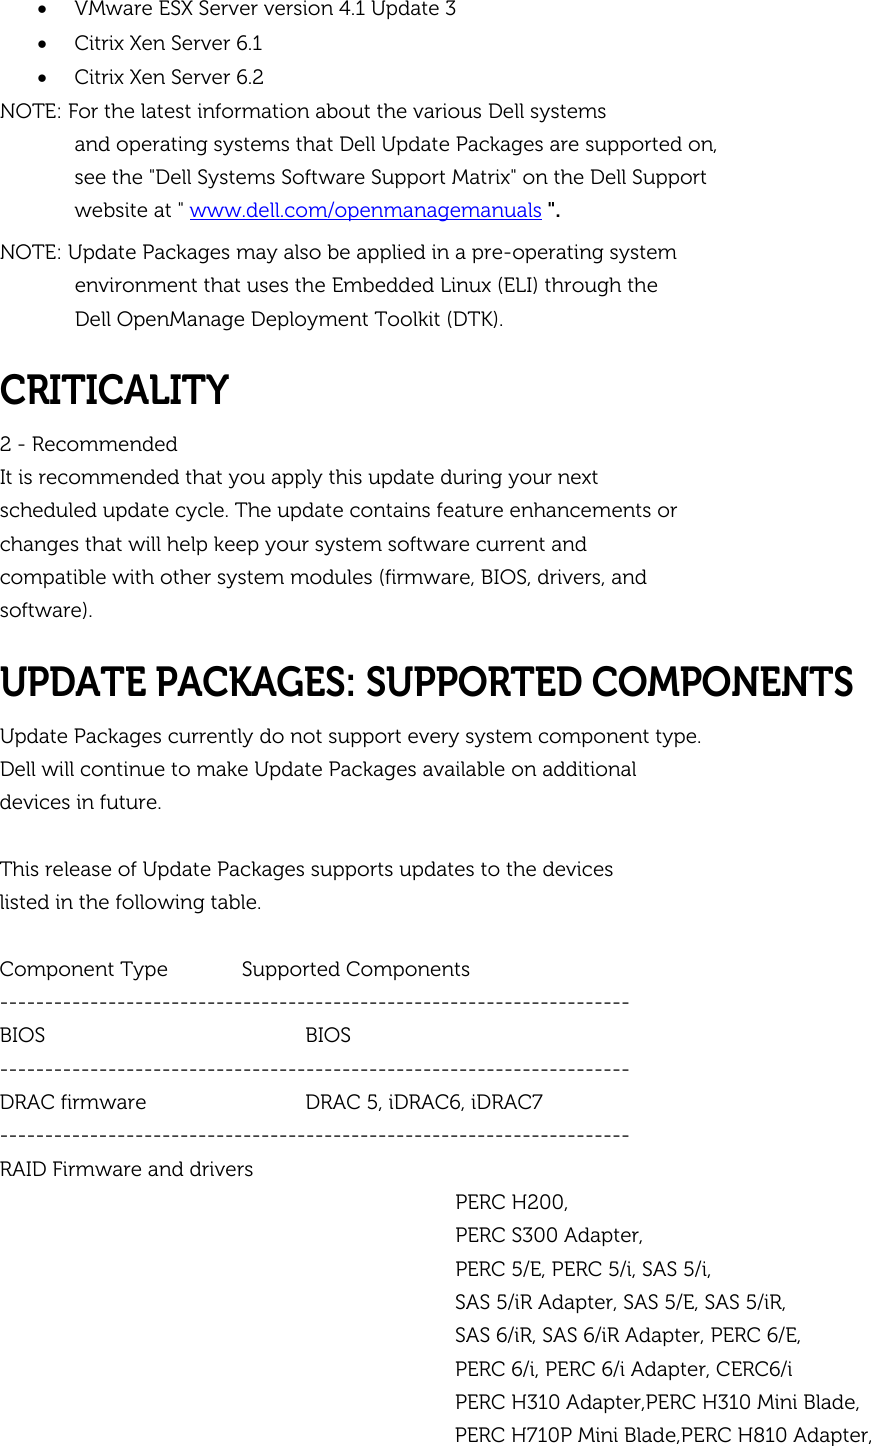 Dell Update Packages Version 7 3 Owners Manual 7 3 Release